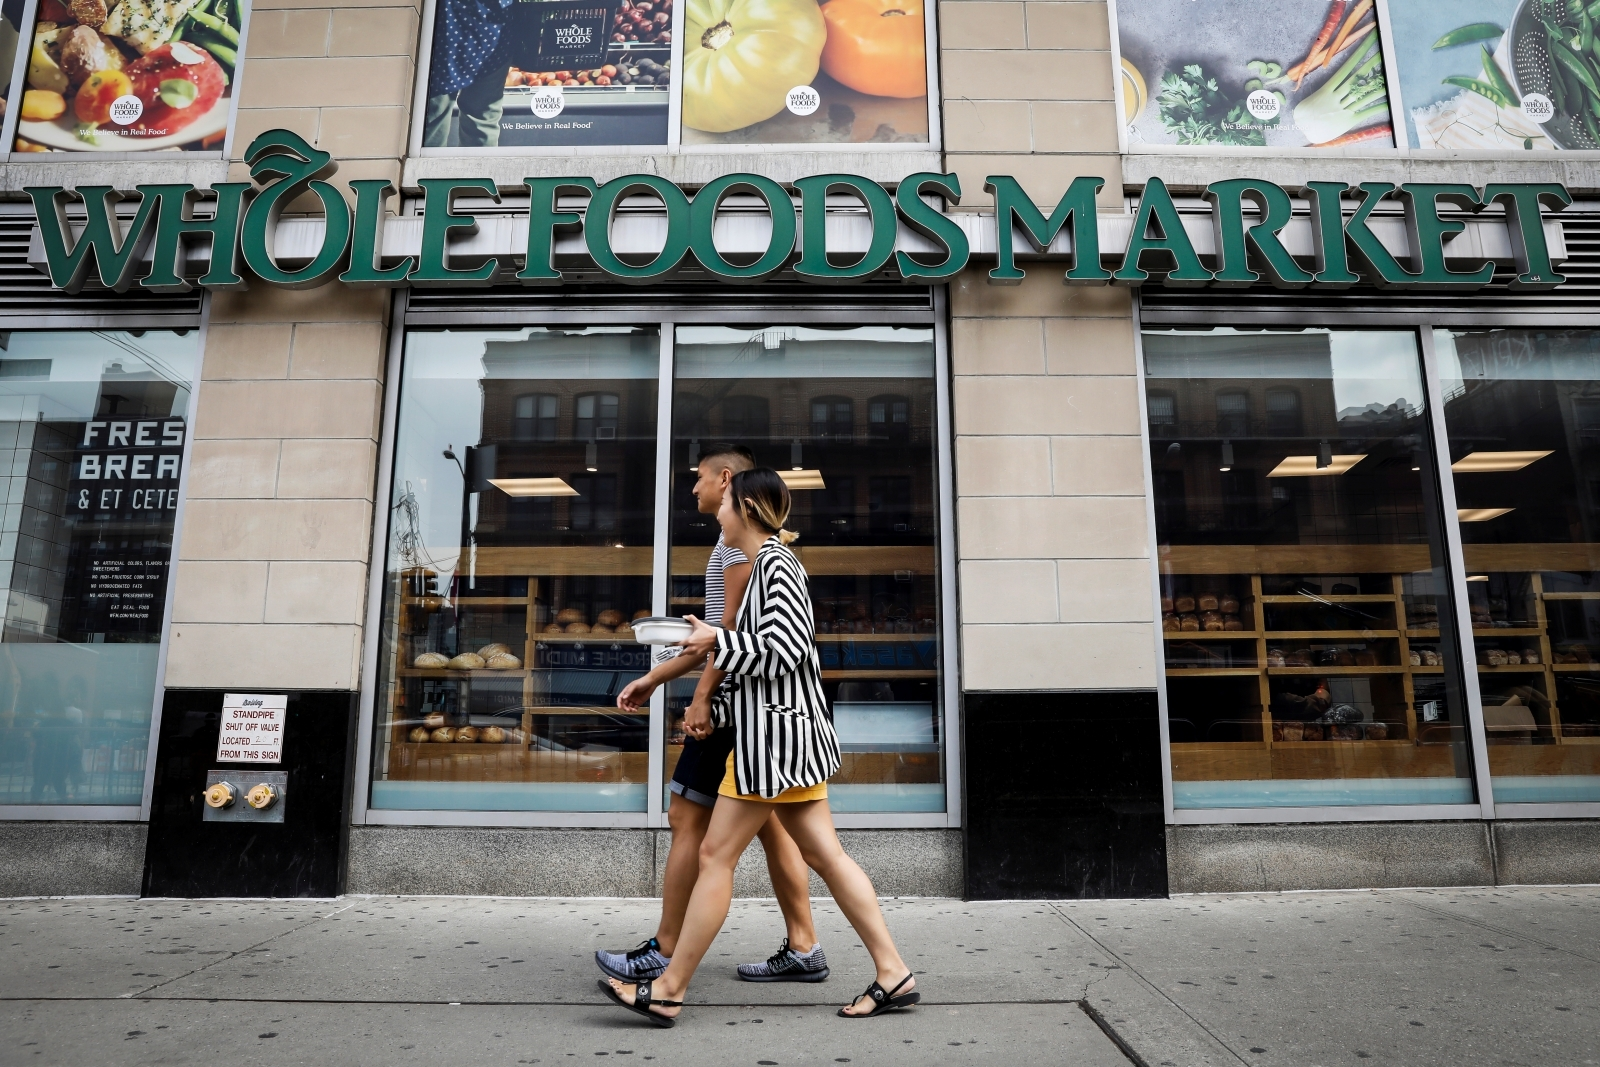 Whole Foods has Point of Sale Systems Hacked